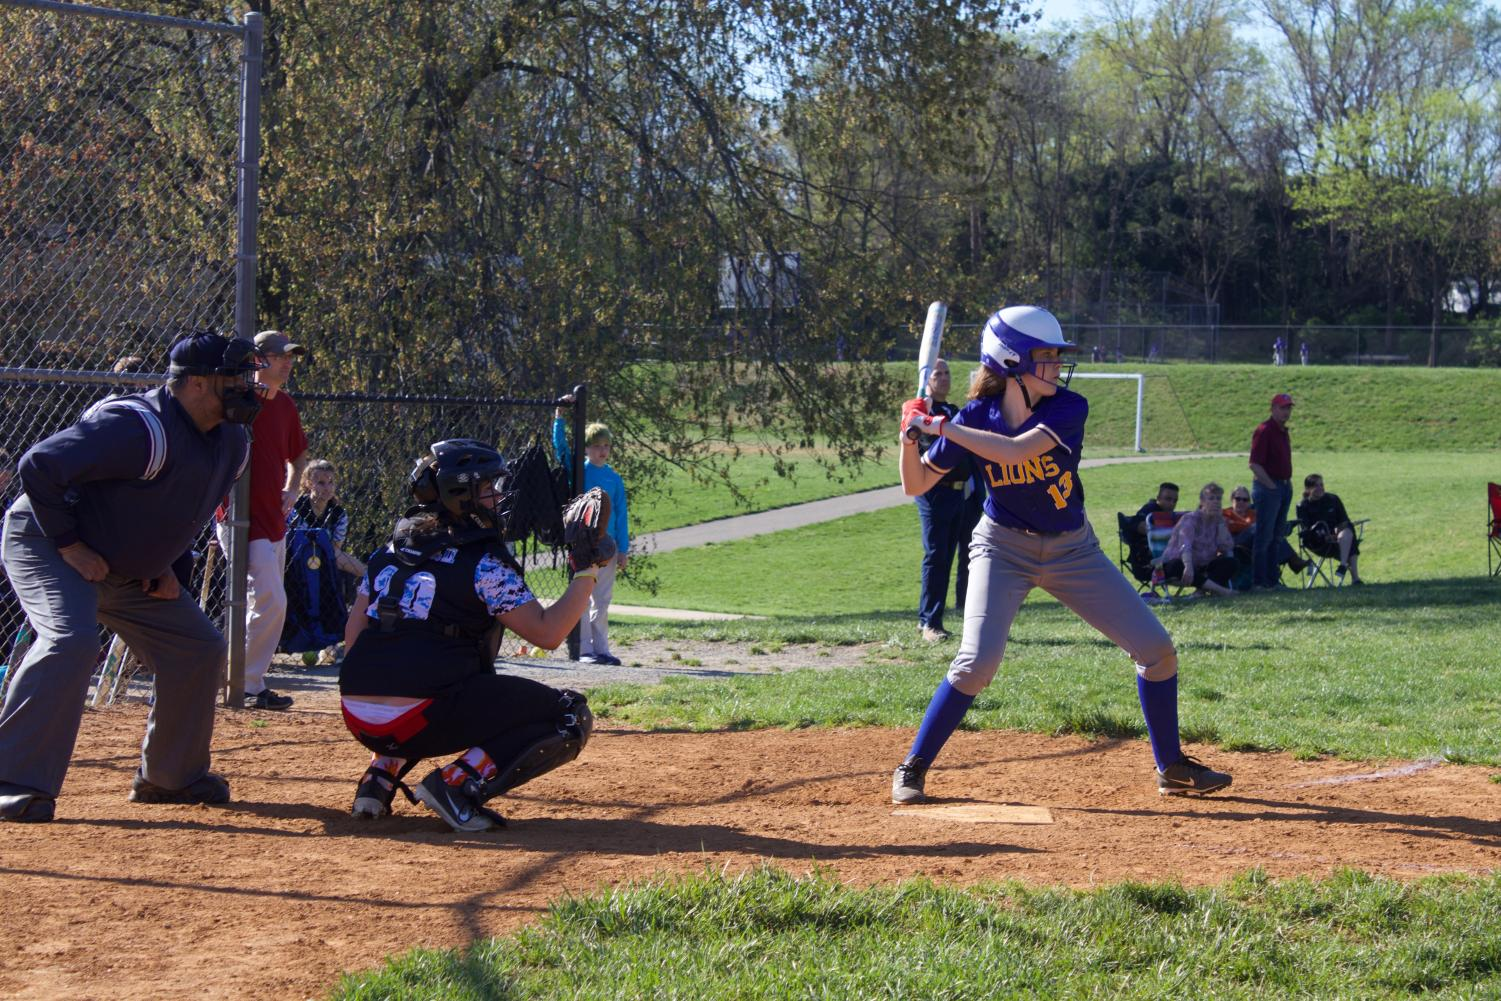 Sophomore Sasha Trainor bats against the McLean Mustangs in a game dominated by Lions offense.